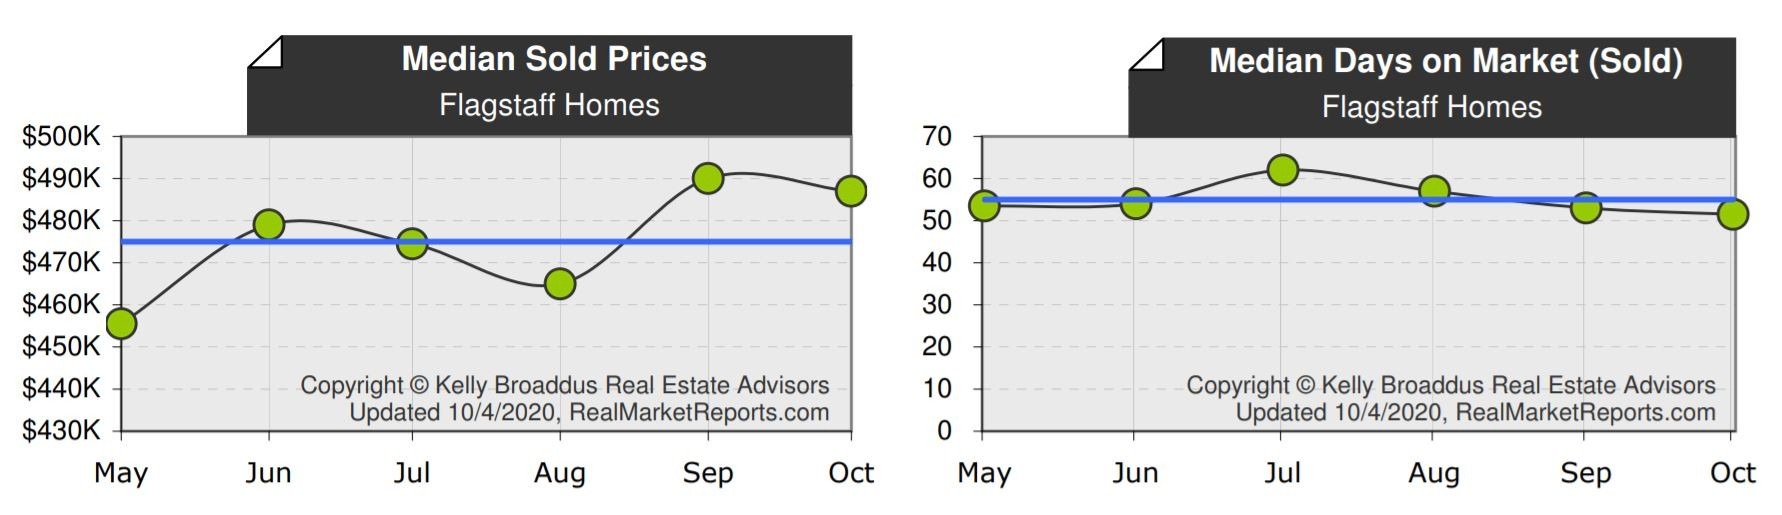 Median Sold Price Days on Market September 2020 Flagstaff